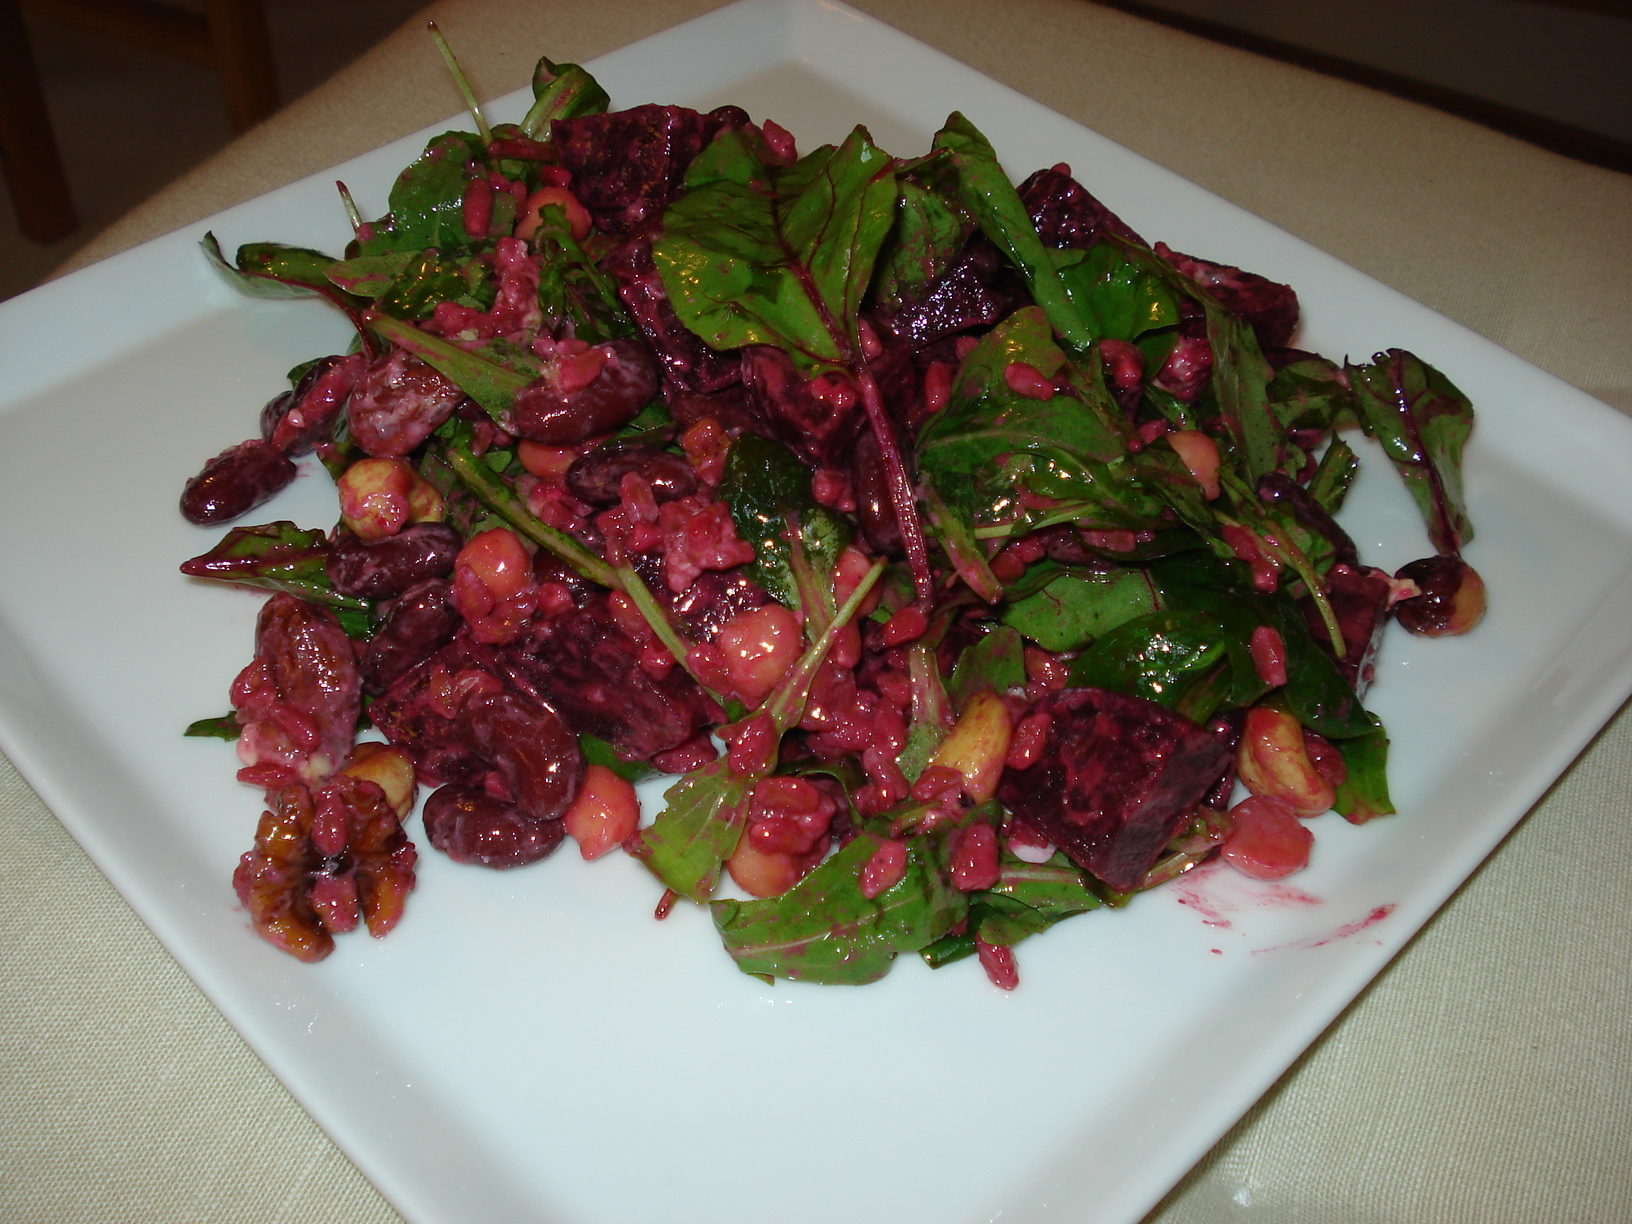 Salad with beets, nuts and blue cheese